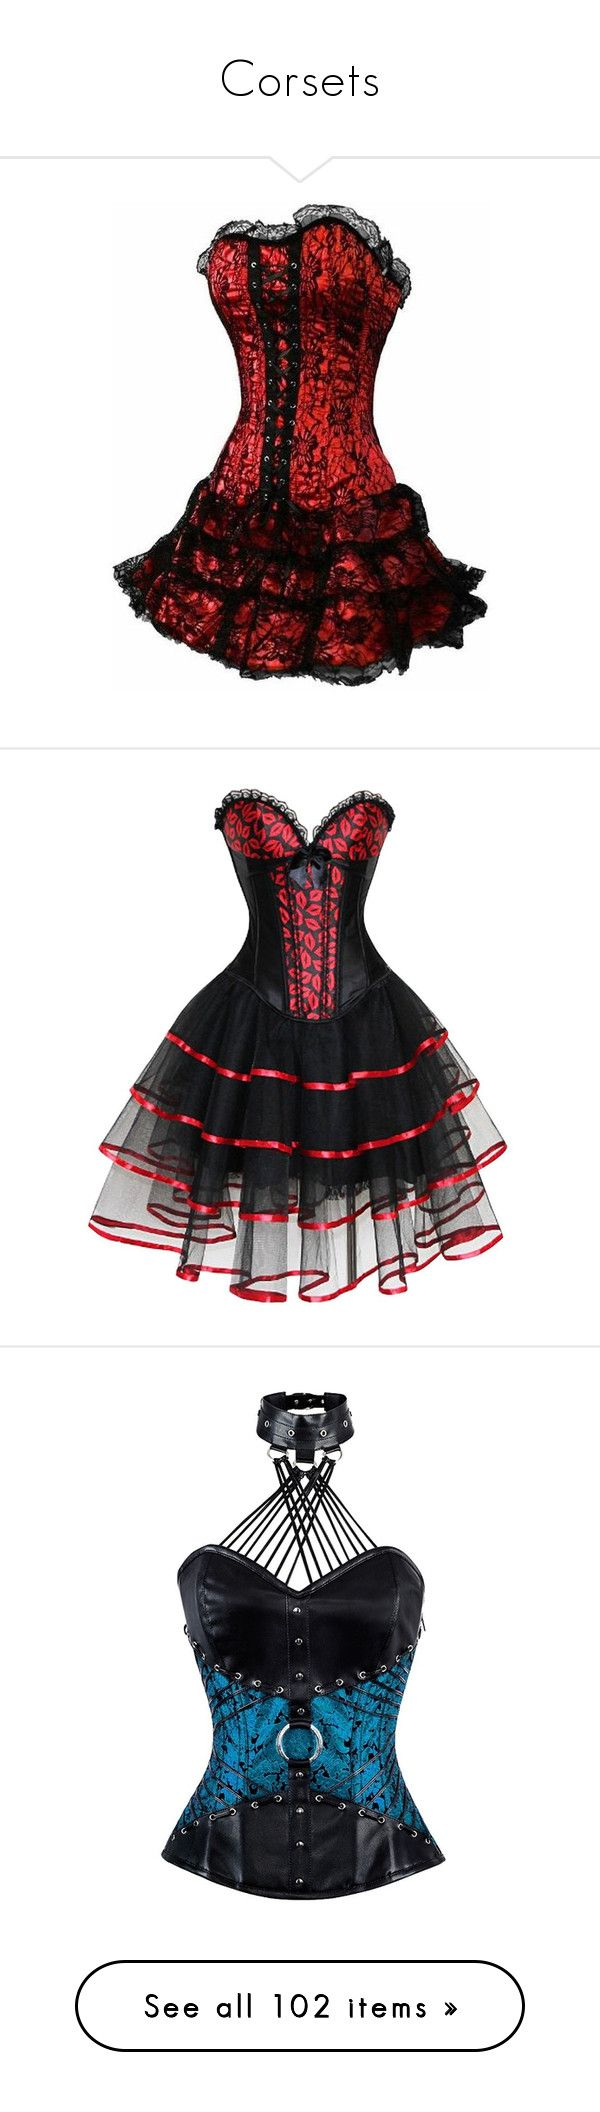 """Corsets"" by hogwartshornbills on Polyvore featuring dresses, short red cocktail dress, red dress, gothic corset dresses, short red dress, red gothic dress, corset, tops, shirts and blue"